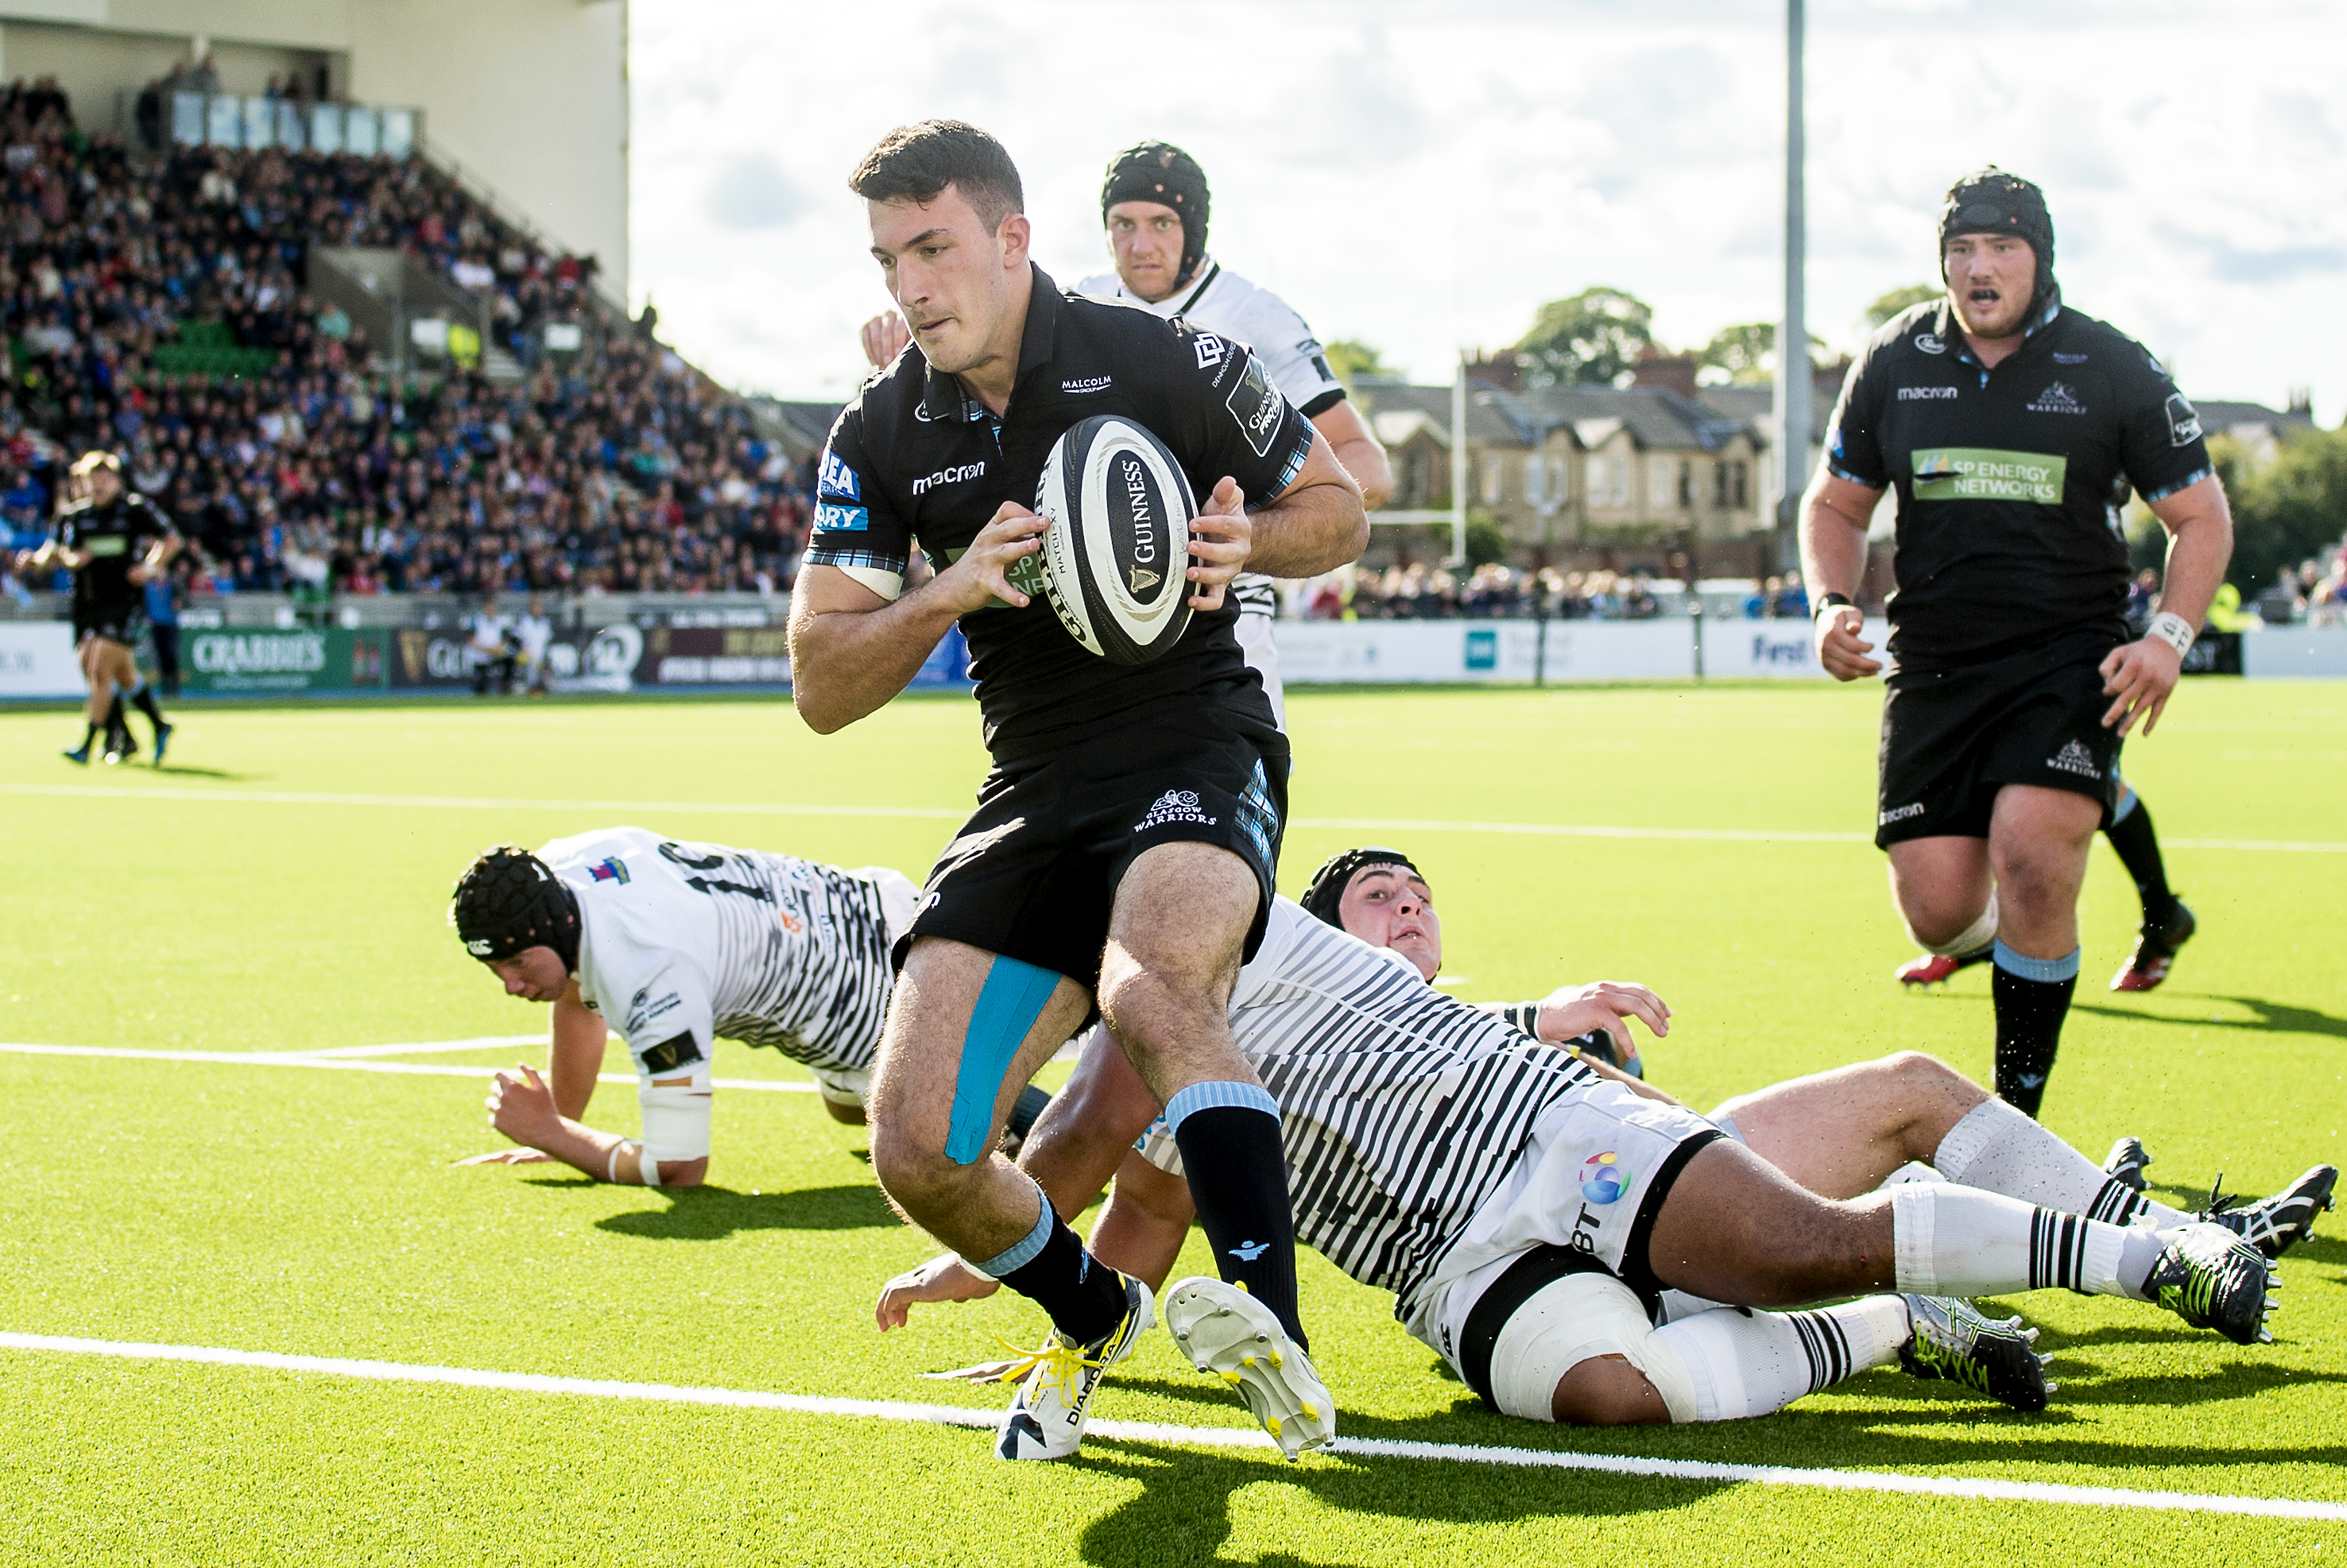 Leo Sarto scores Glasgow's second try against Ospreys. The Warriors are the only unbeaten team in the PRO14 to have won against play-off rivals in the first two rounds.